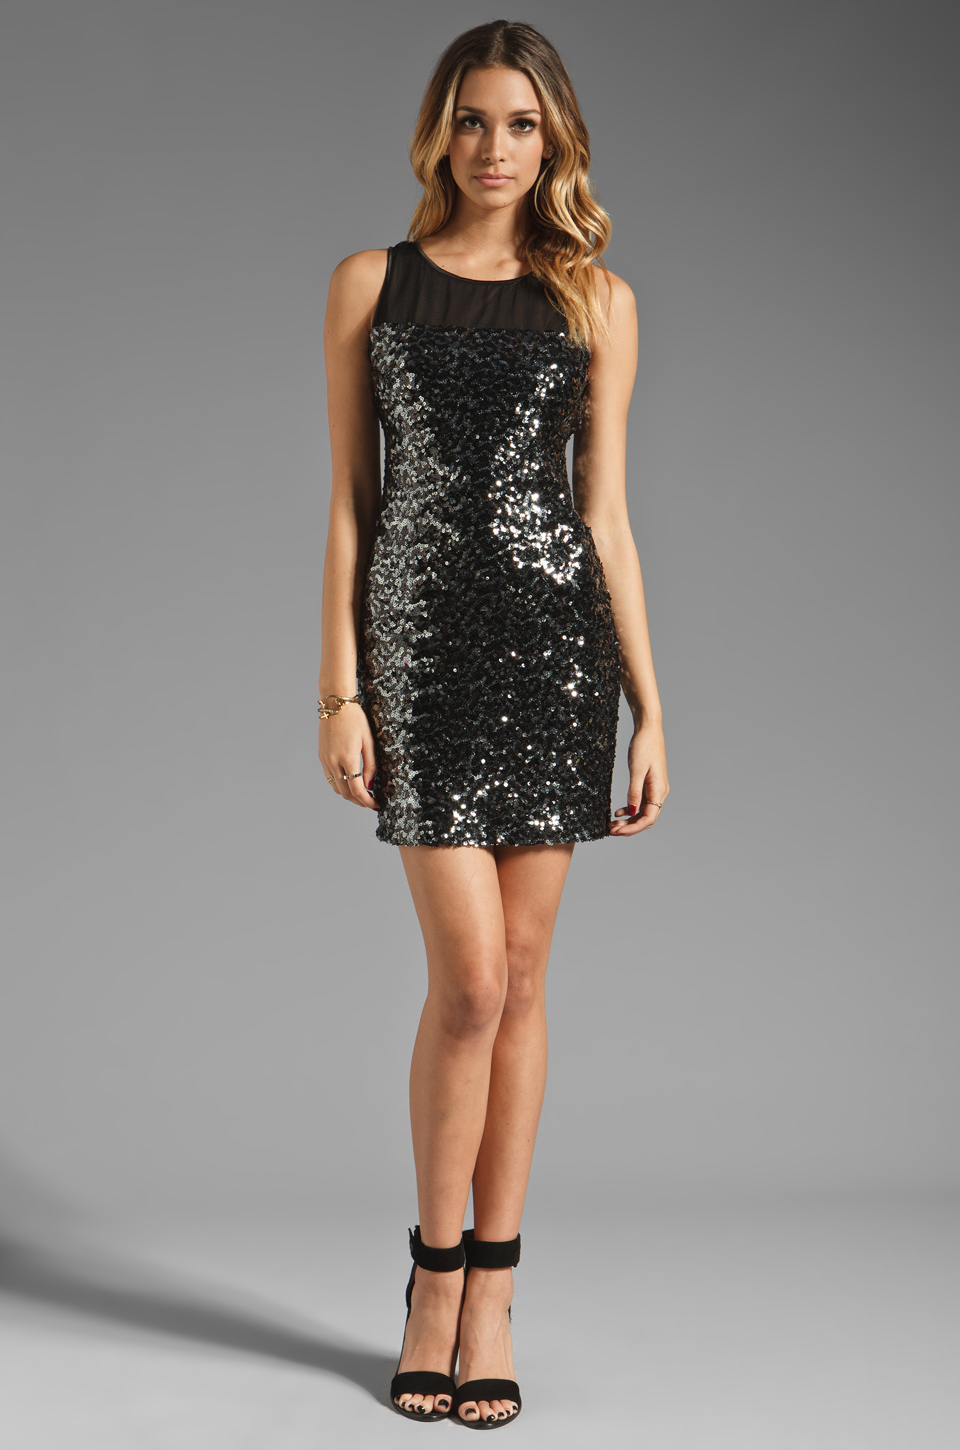 MM Couture by Miss Me Sleeveless Dress w/ Sequin Body in Black